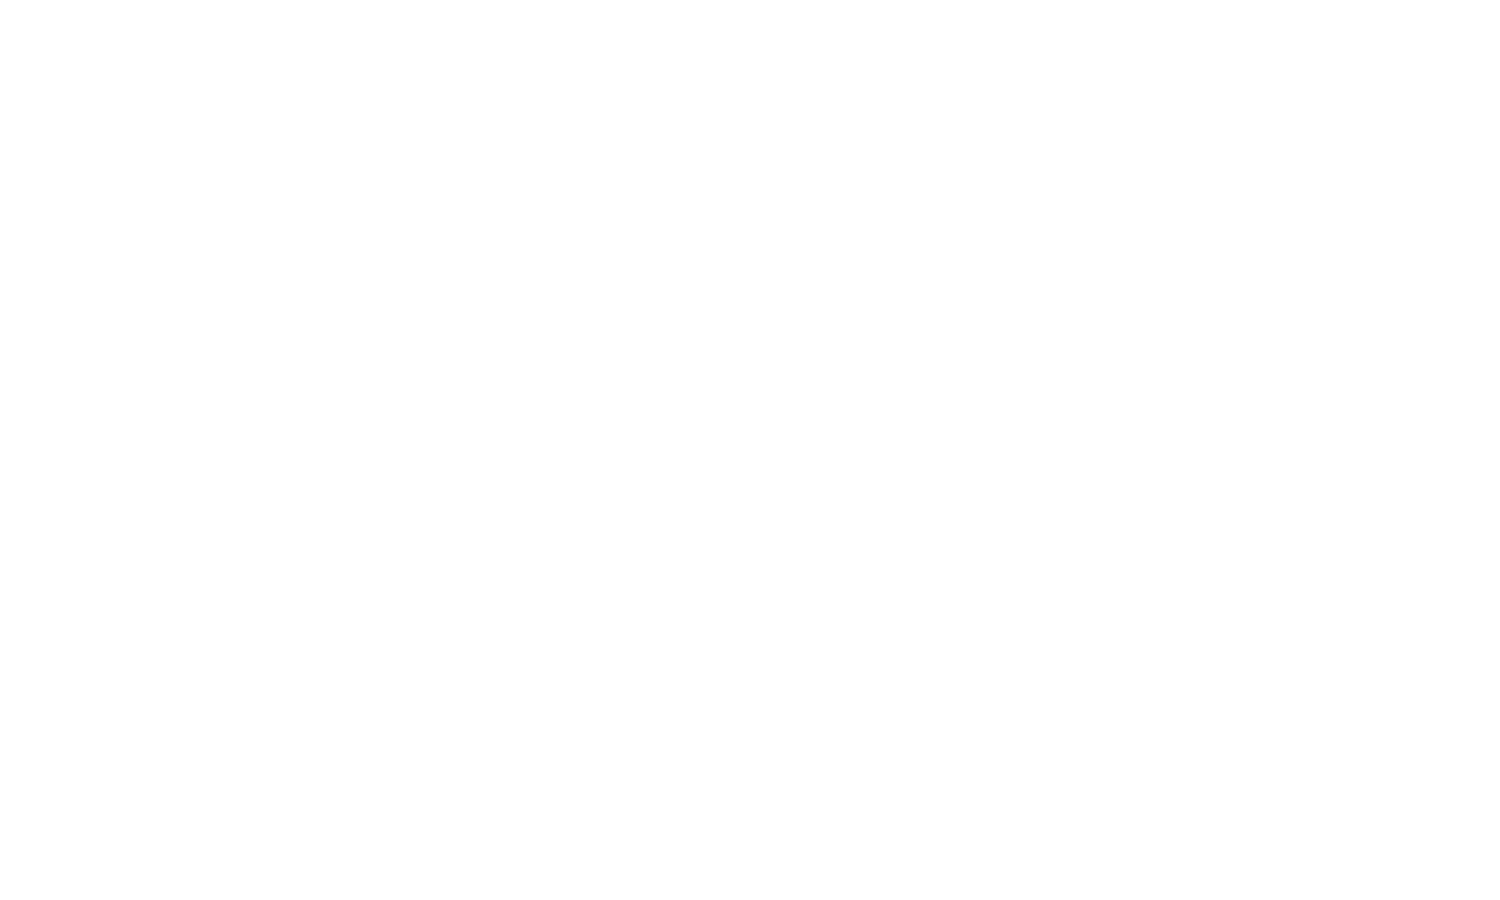 Crossing Threshold